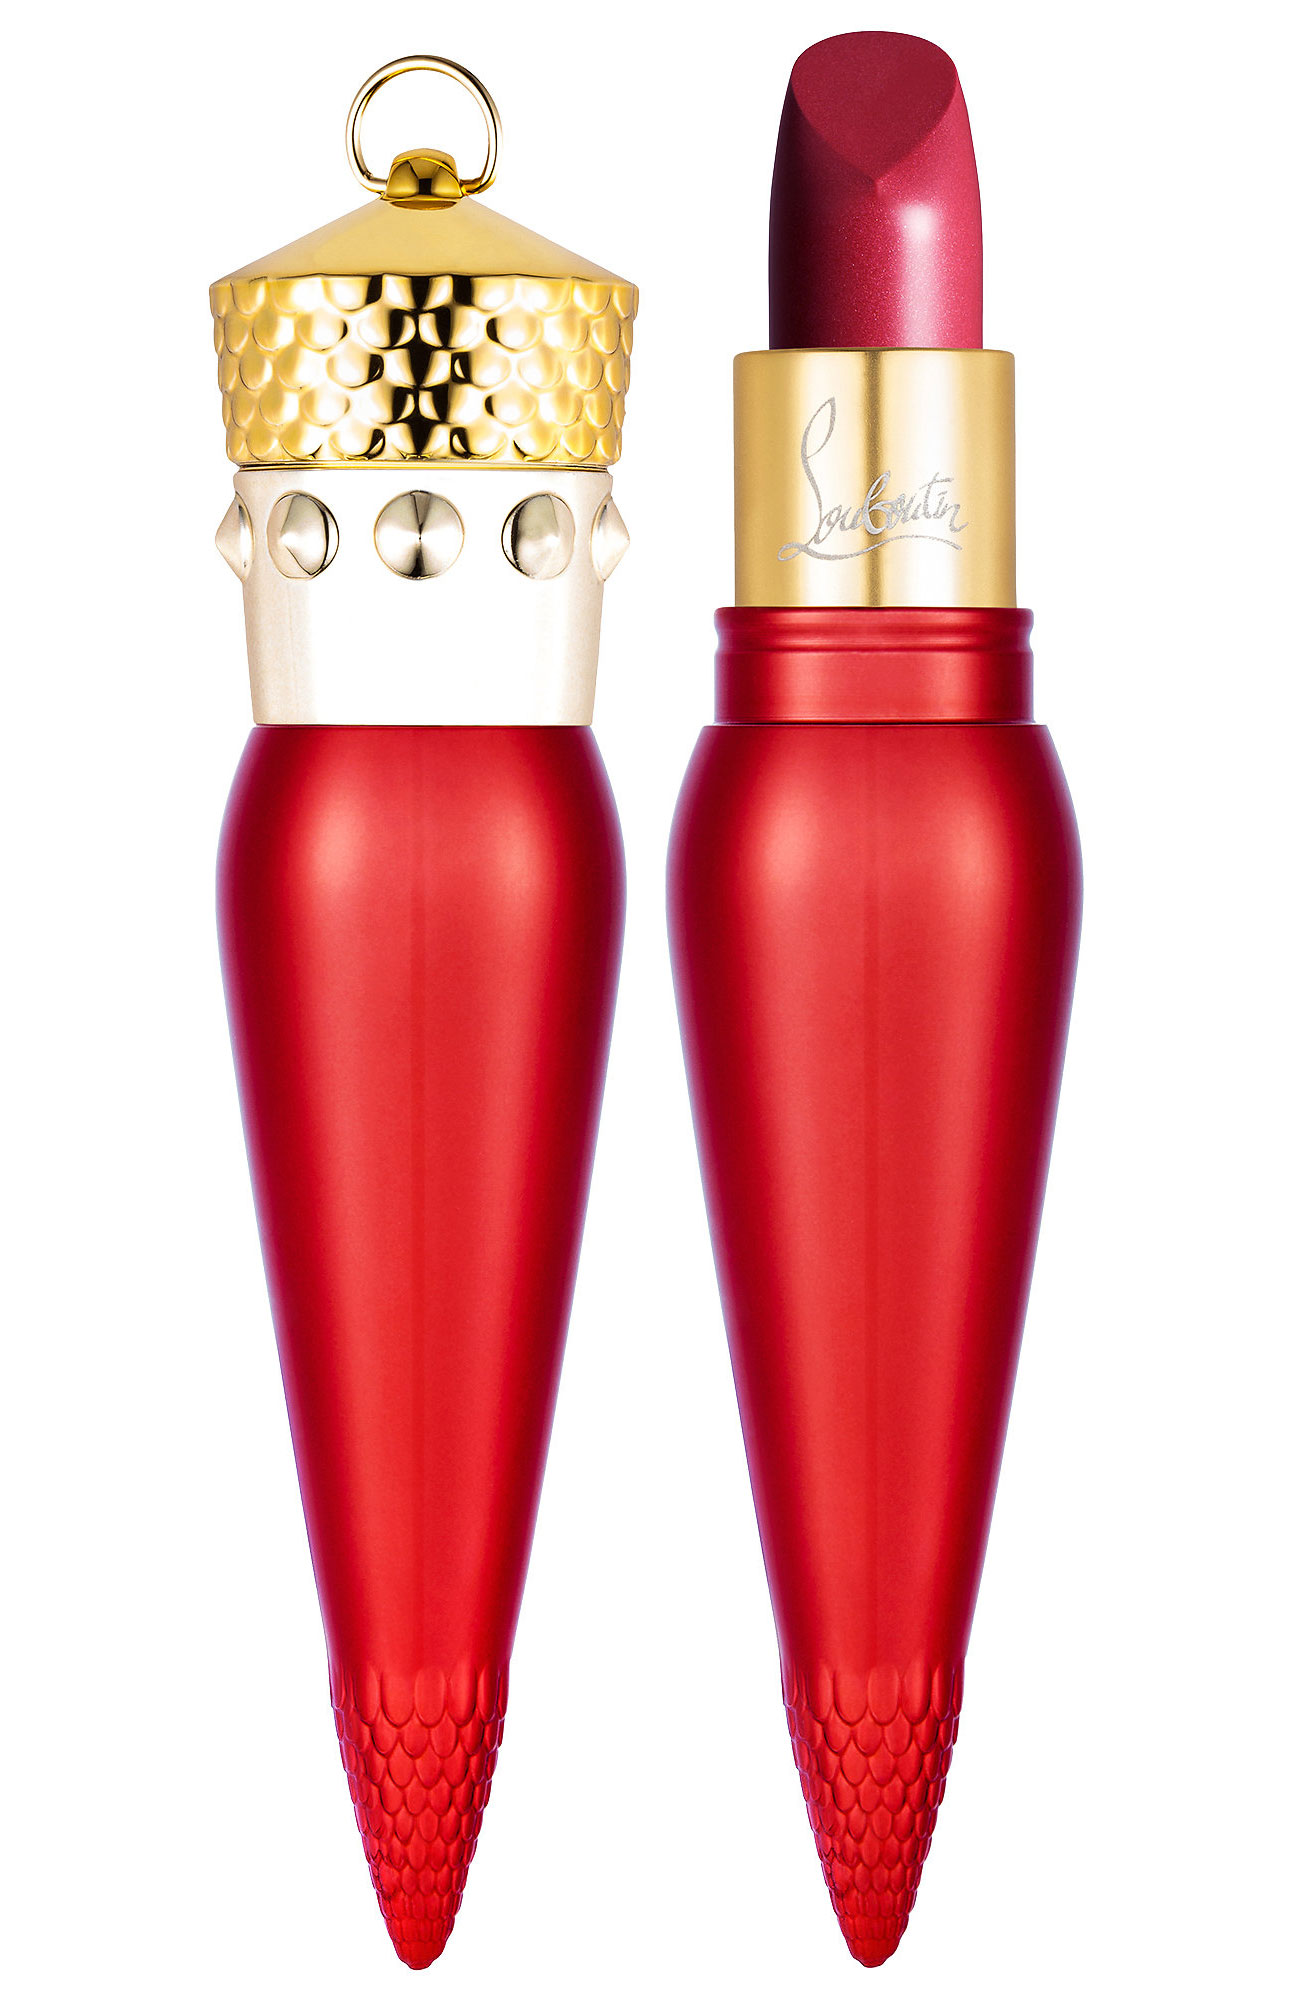 Rouge-Louboutin-Metalissime-Silky-Satin-Lip-Colour